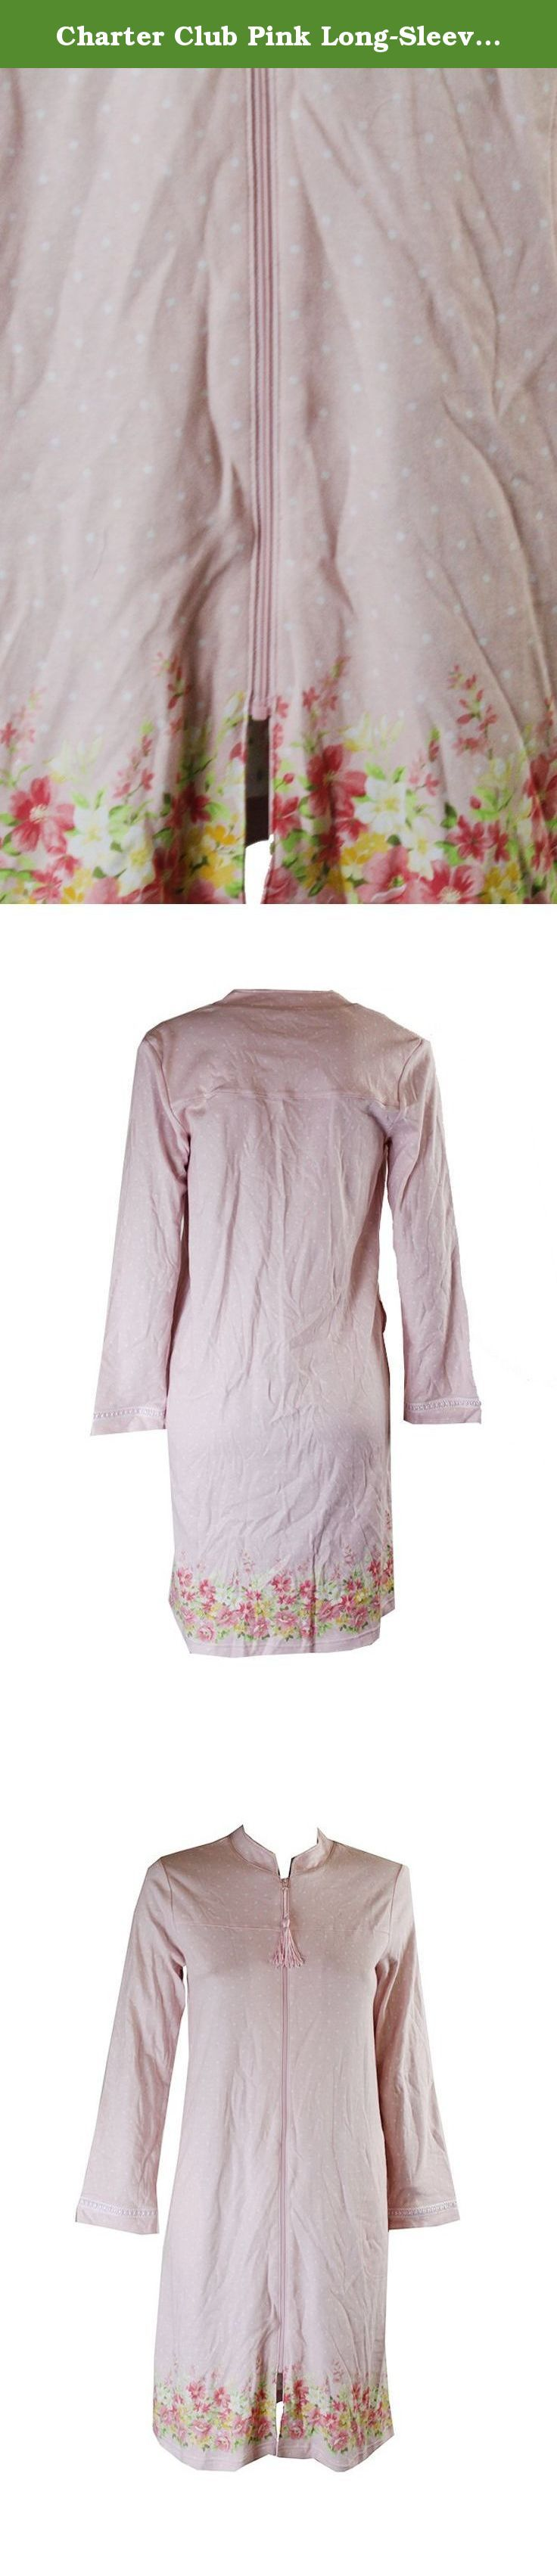 Charter Club Pink Long-Sleeve Polka Dots Zip-Up Robe XS. Charter Club Pink Long-Sleeve Polka Dots Zip-Up Robe XS.